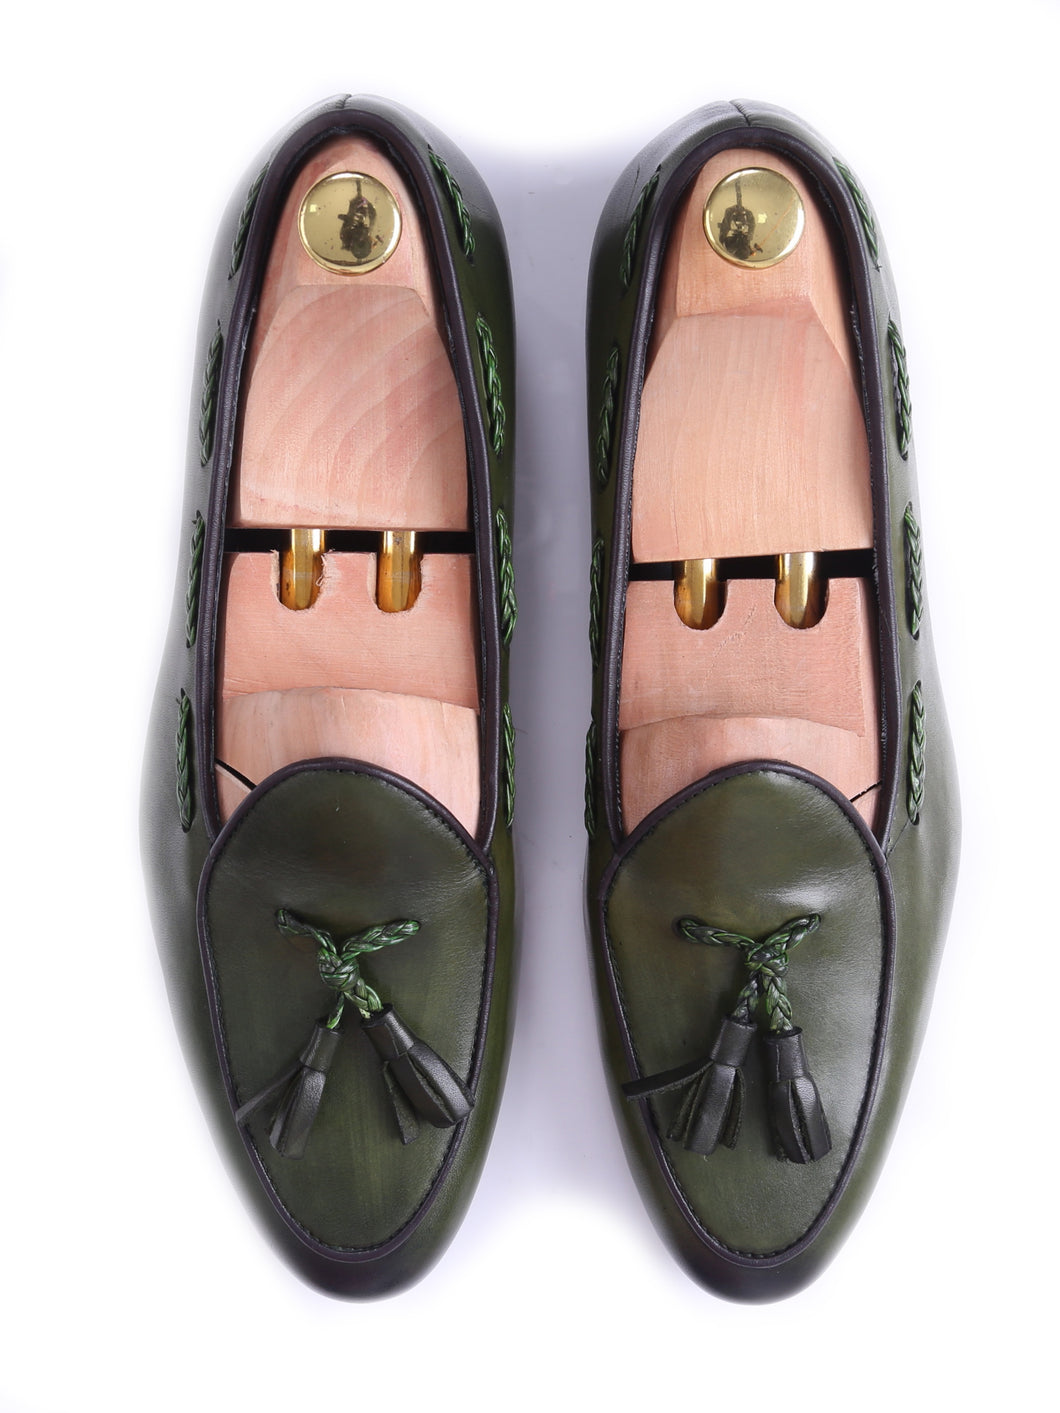 Belgian Loafer - Moss Green With Tassel  (Hand Painted Patina)